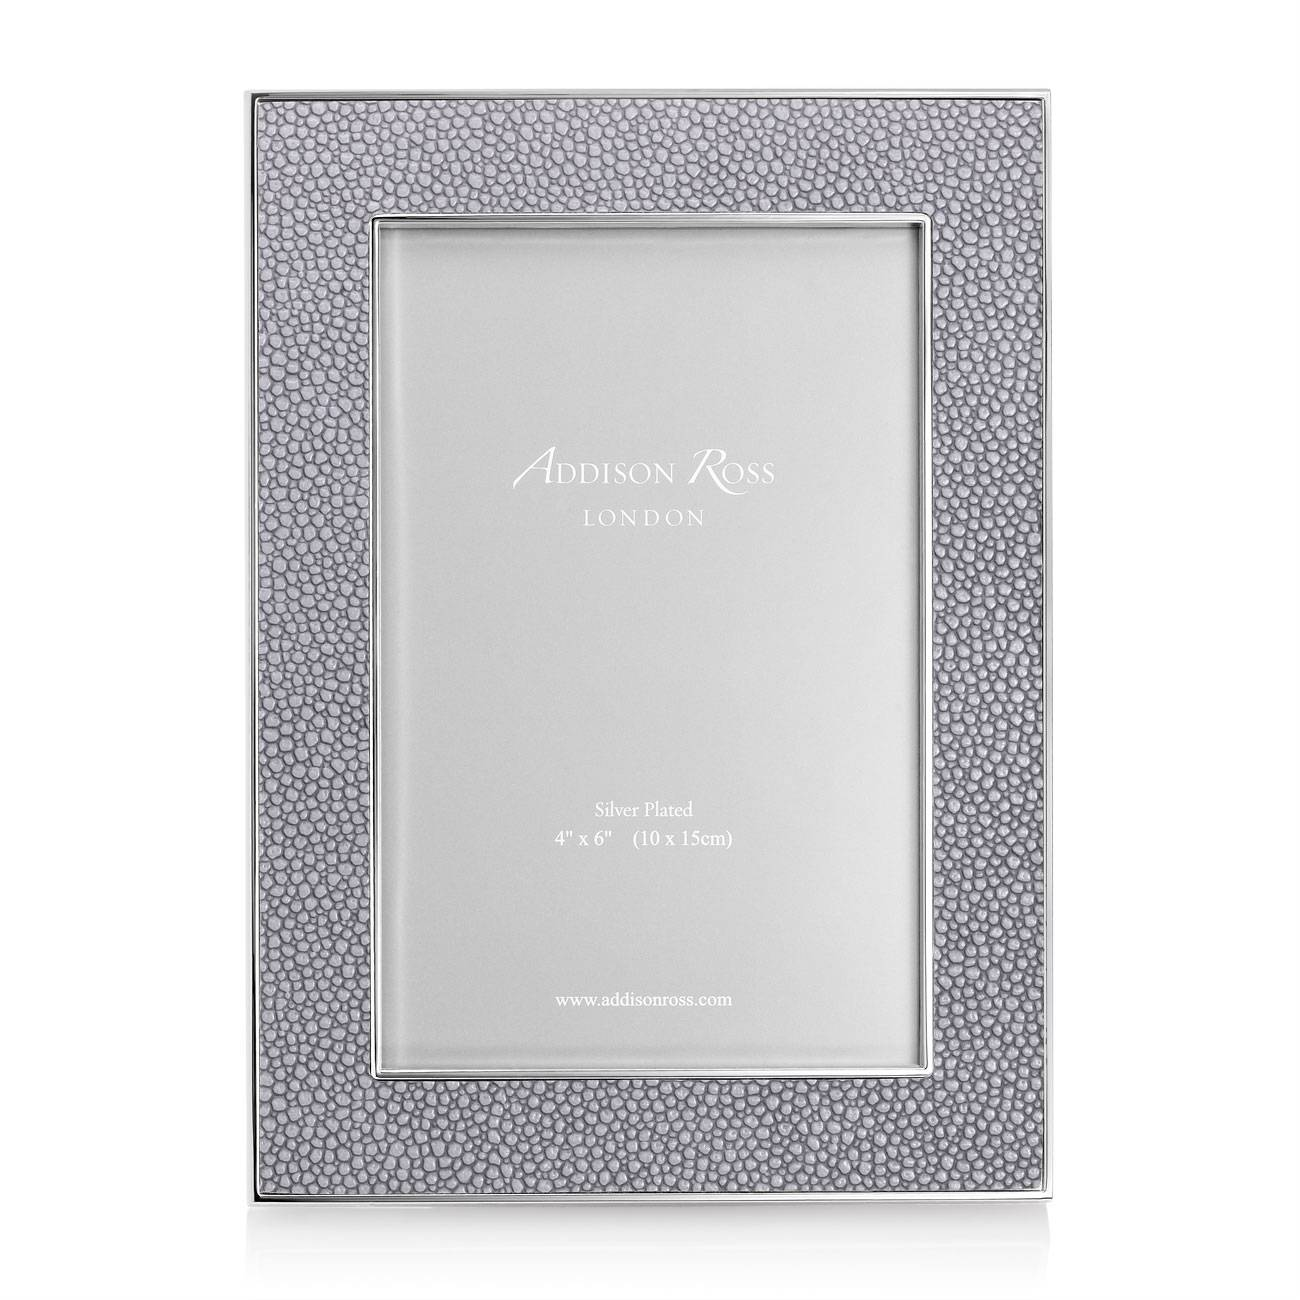 Addison Ross Shagreen Frame Grey 4 Inch By 6 Inch